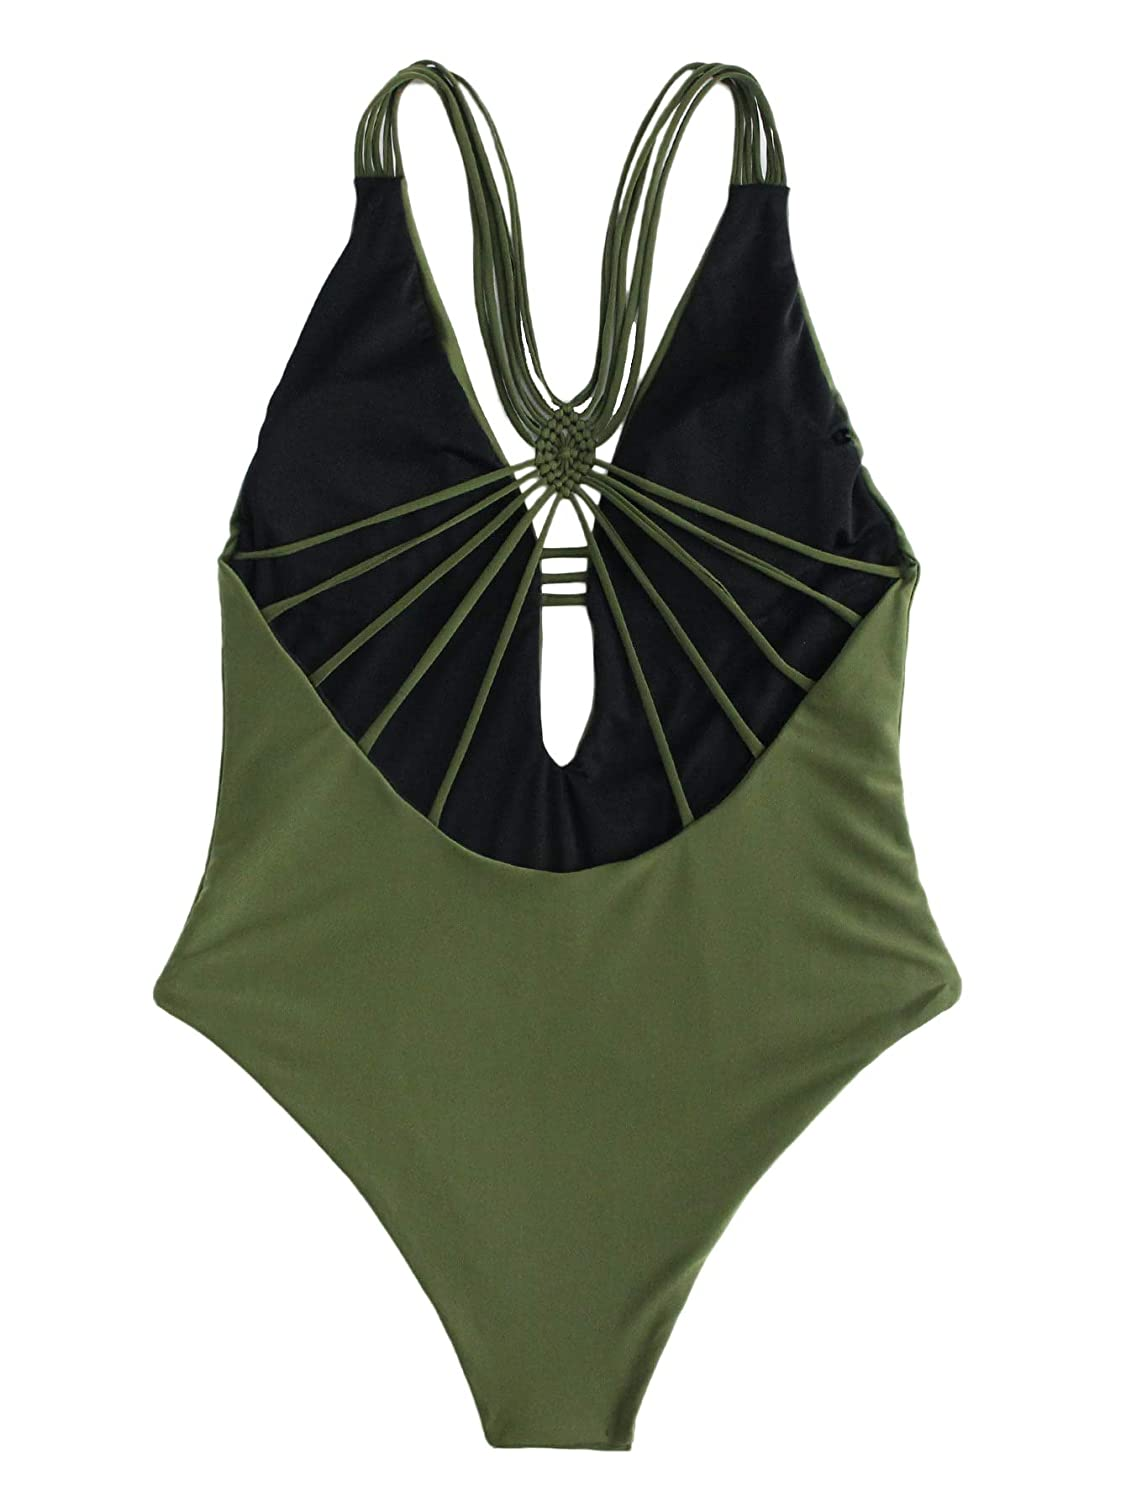 017cbd1a9b SheIn Women's Deep Plunge Strappy One Piece Swimsuits Bathing Suits  Monokinis at Amazon Women's Clothing store: